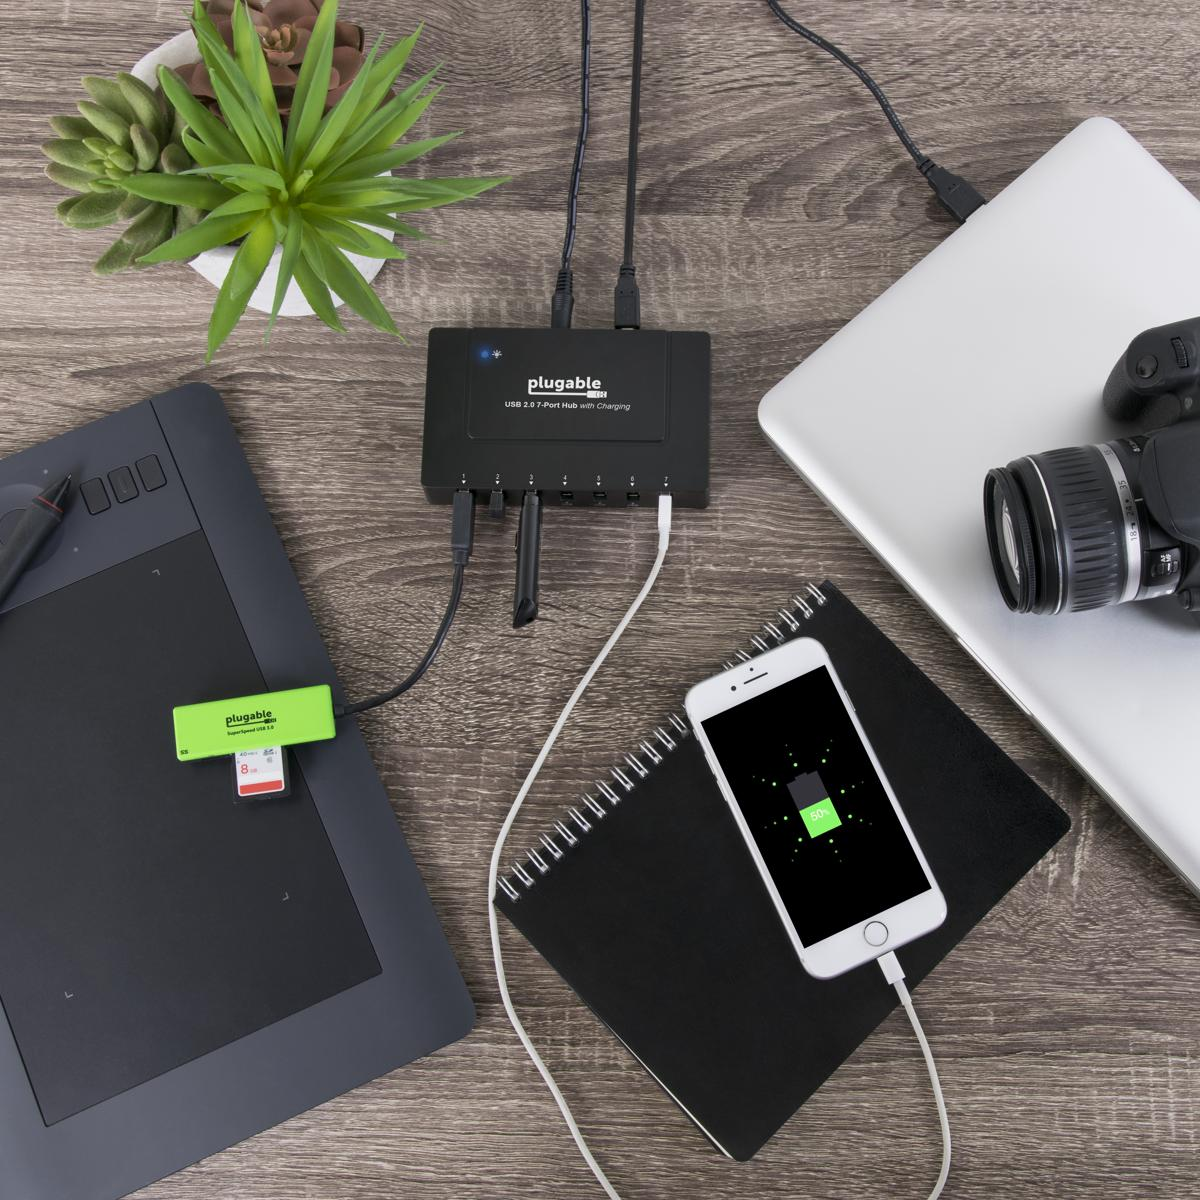 Plugable USB2-HUB7BC with multiple devices plugged in